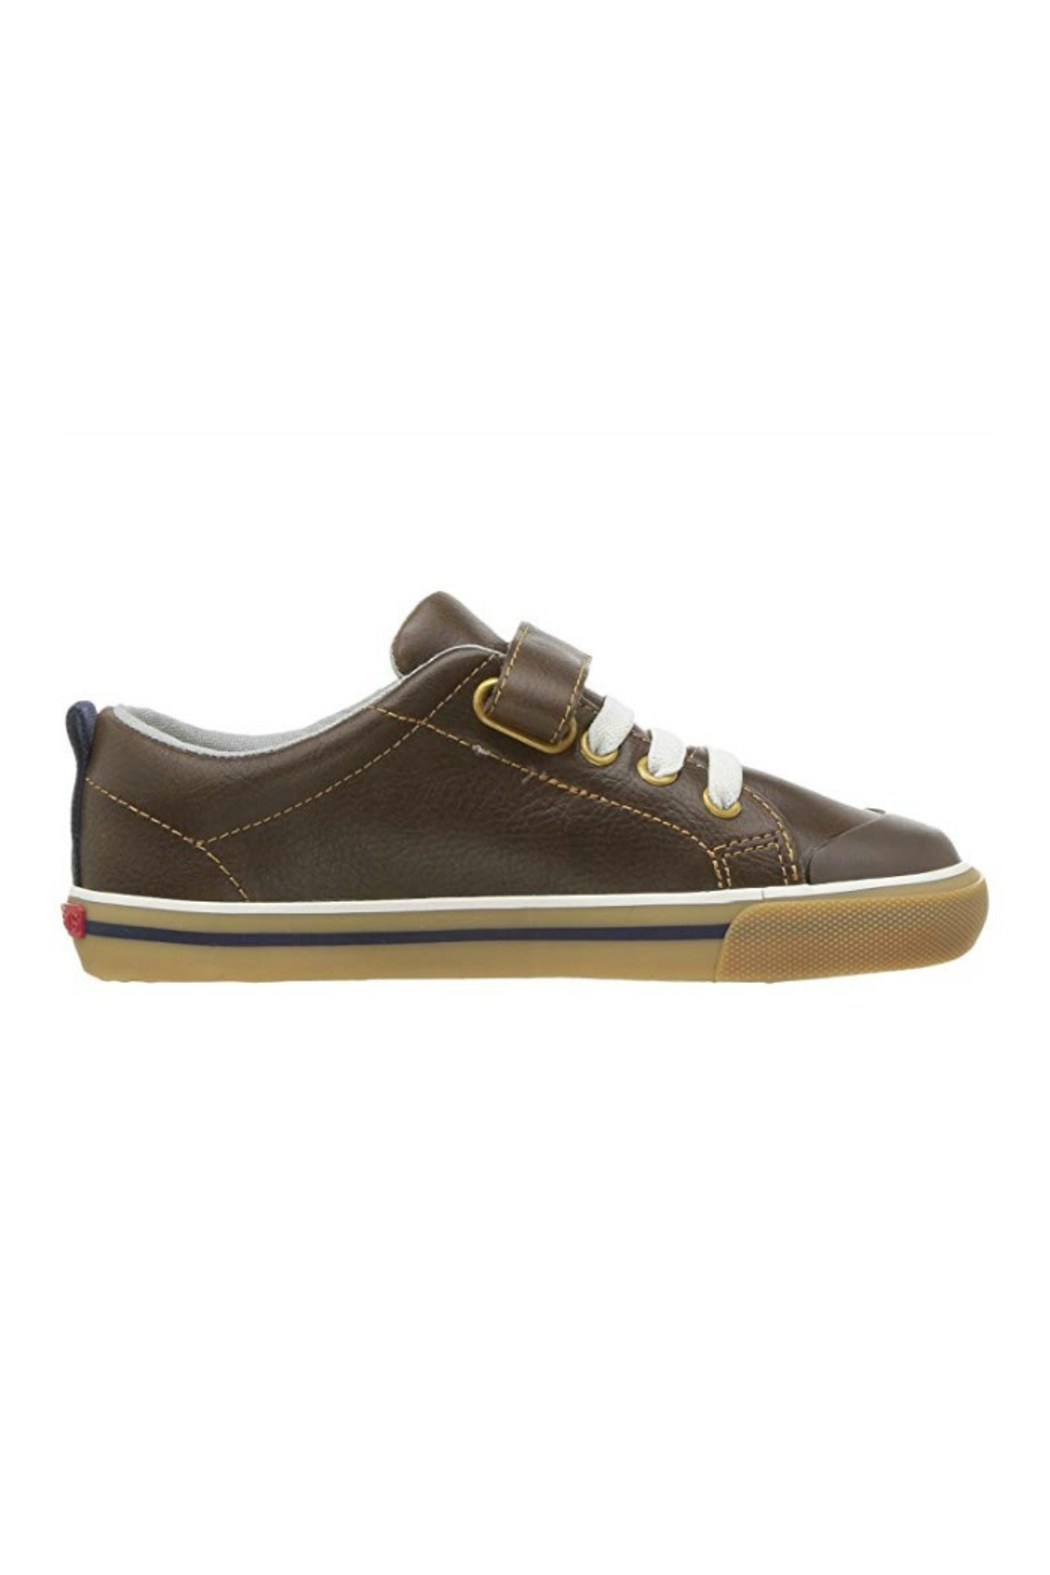 See Kai Run Stevie II in Brown Leather - Main Image